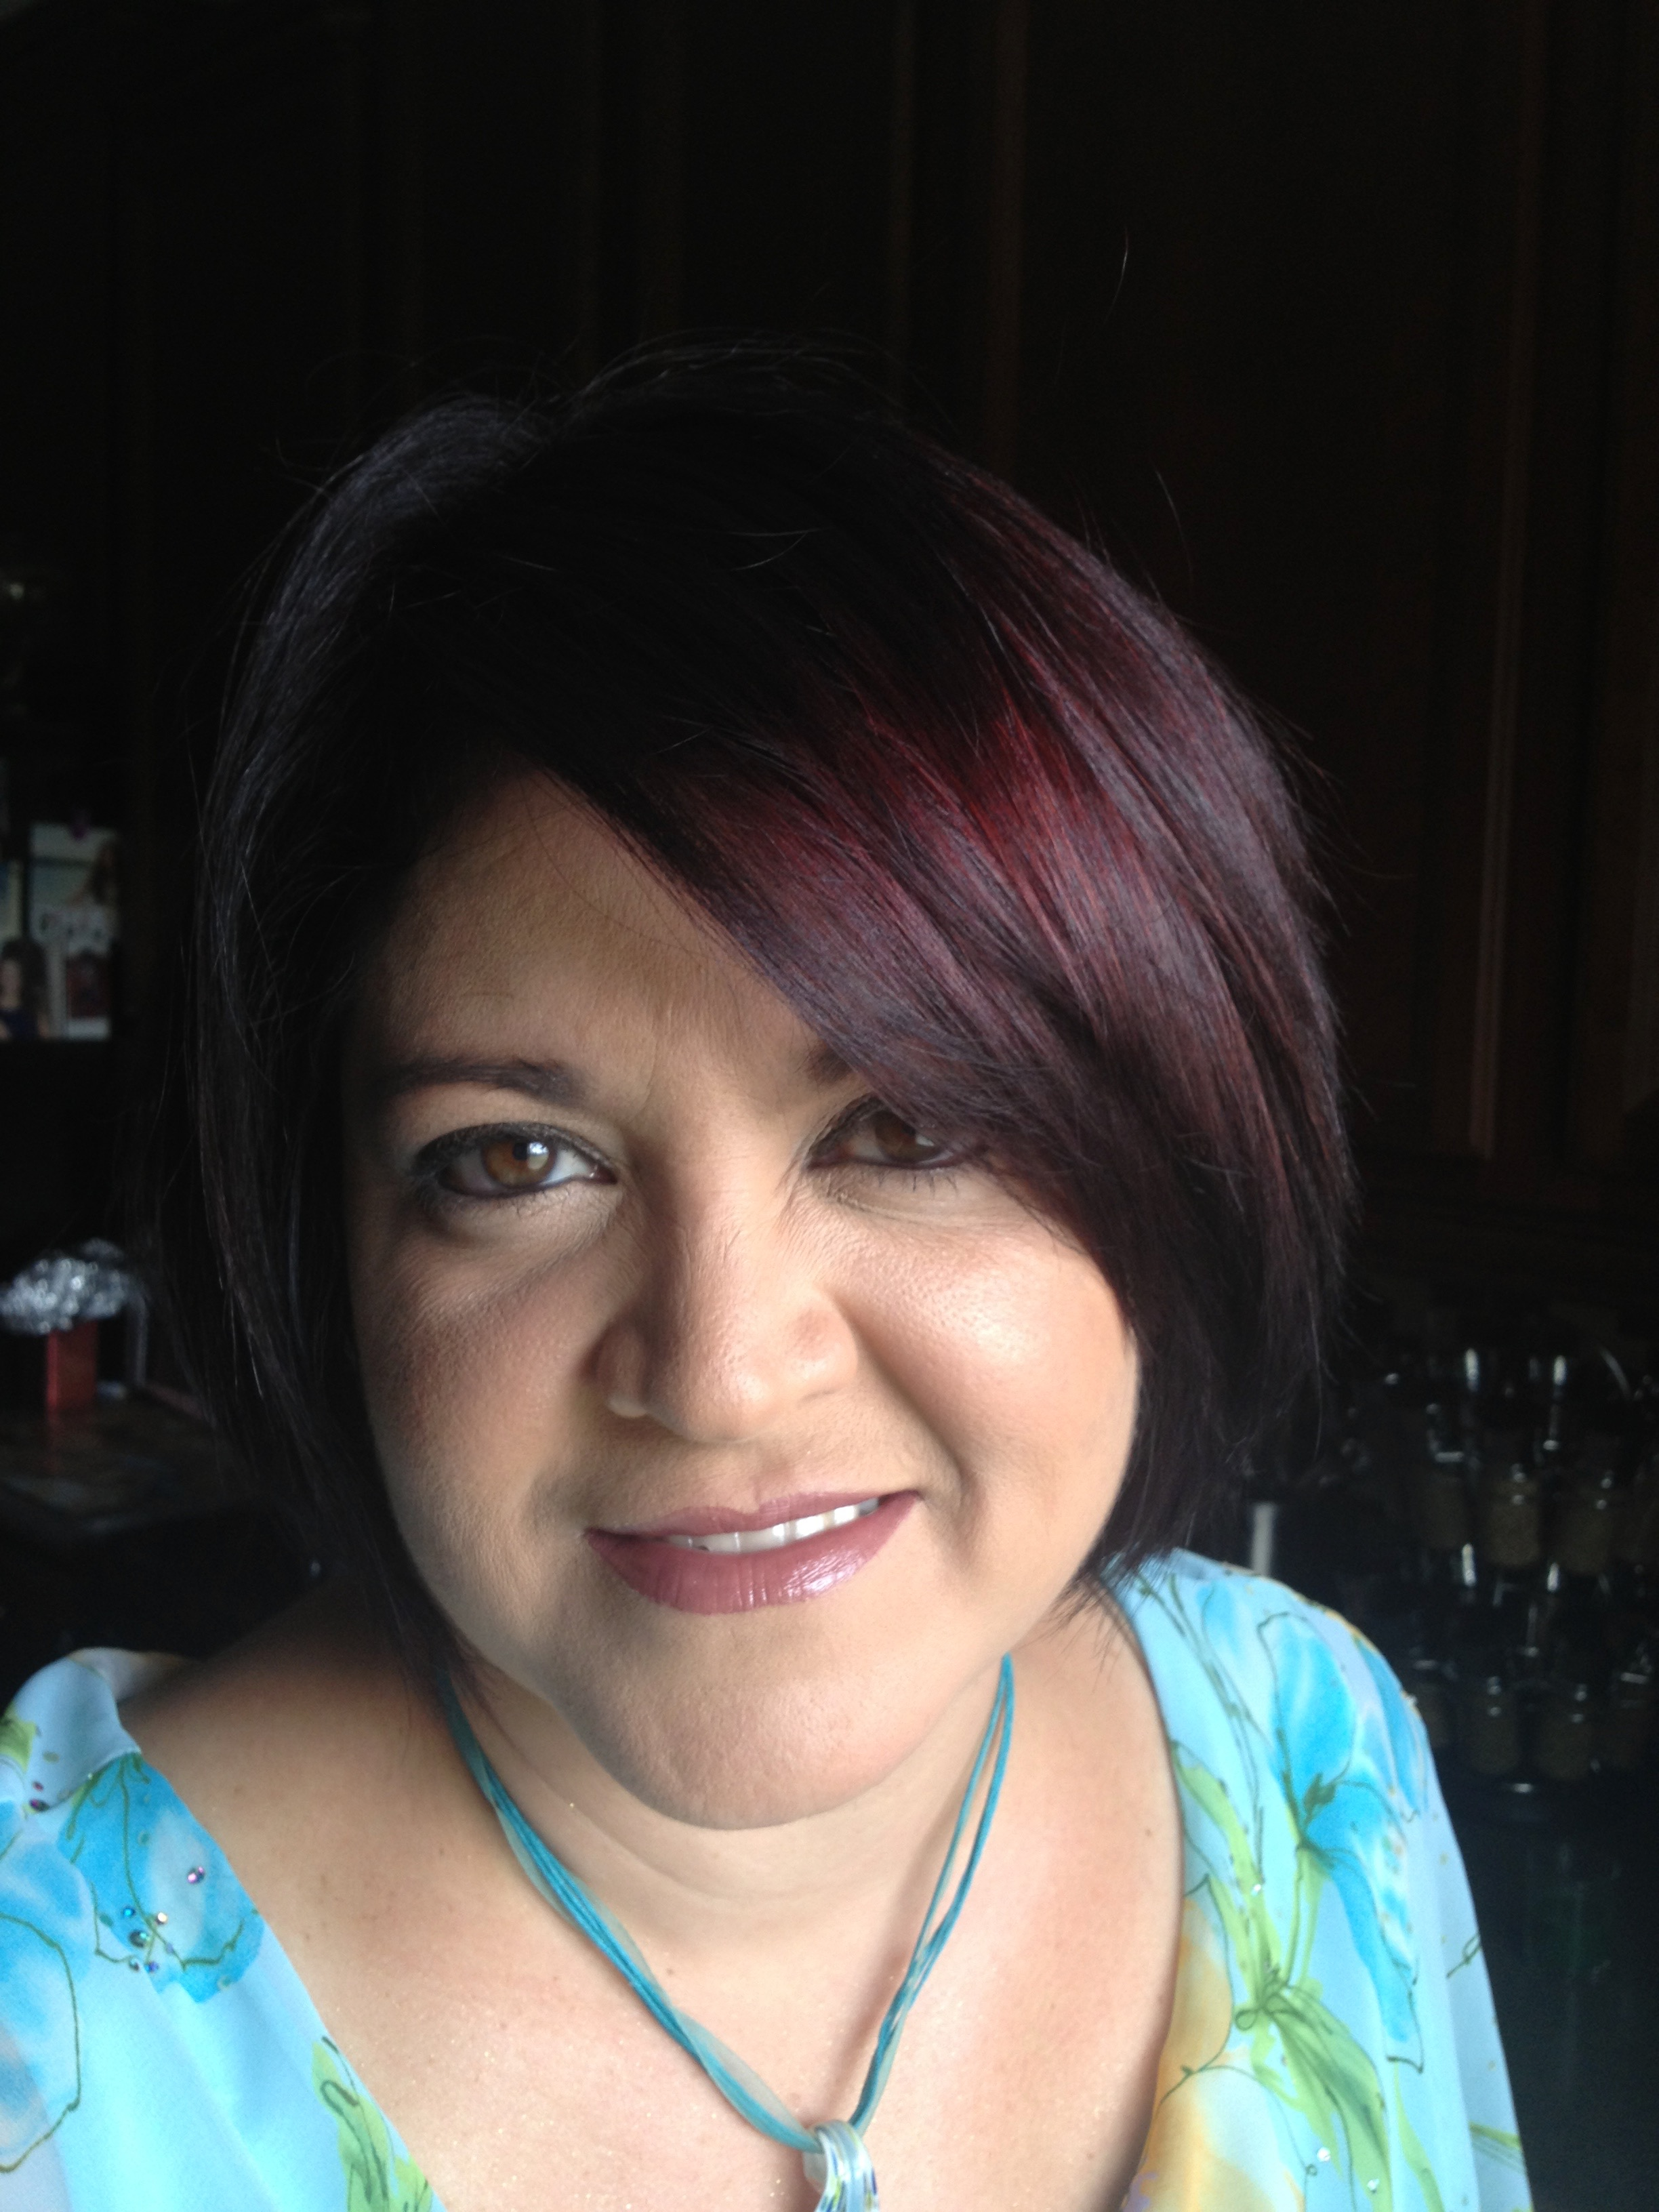 Lizette has labored in making theological education accessible to Latinos in the US, particularly in Central Florida. She holds a Ph.D. in Biblical Studies from Regent University.